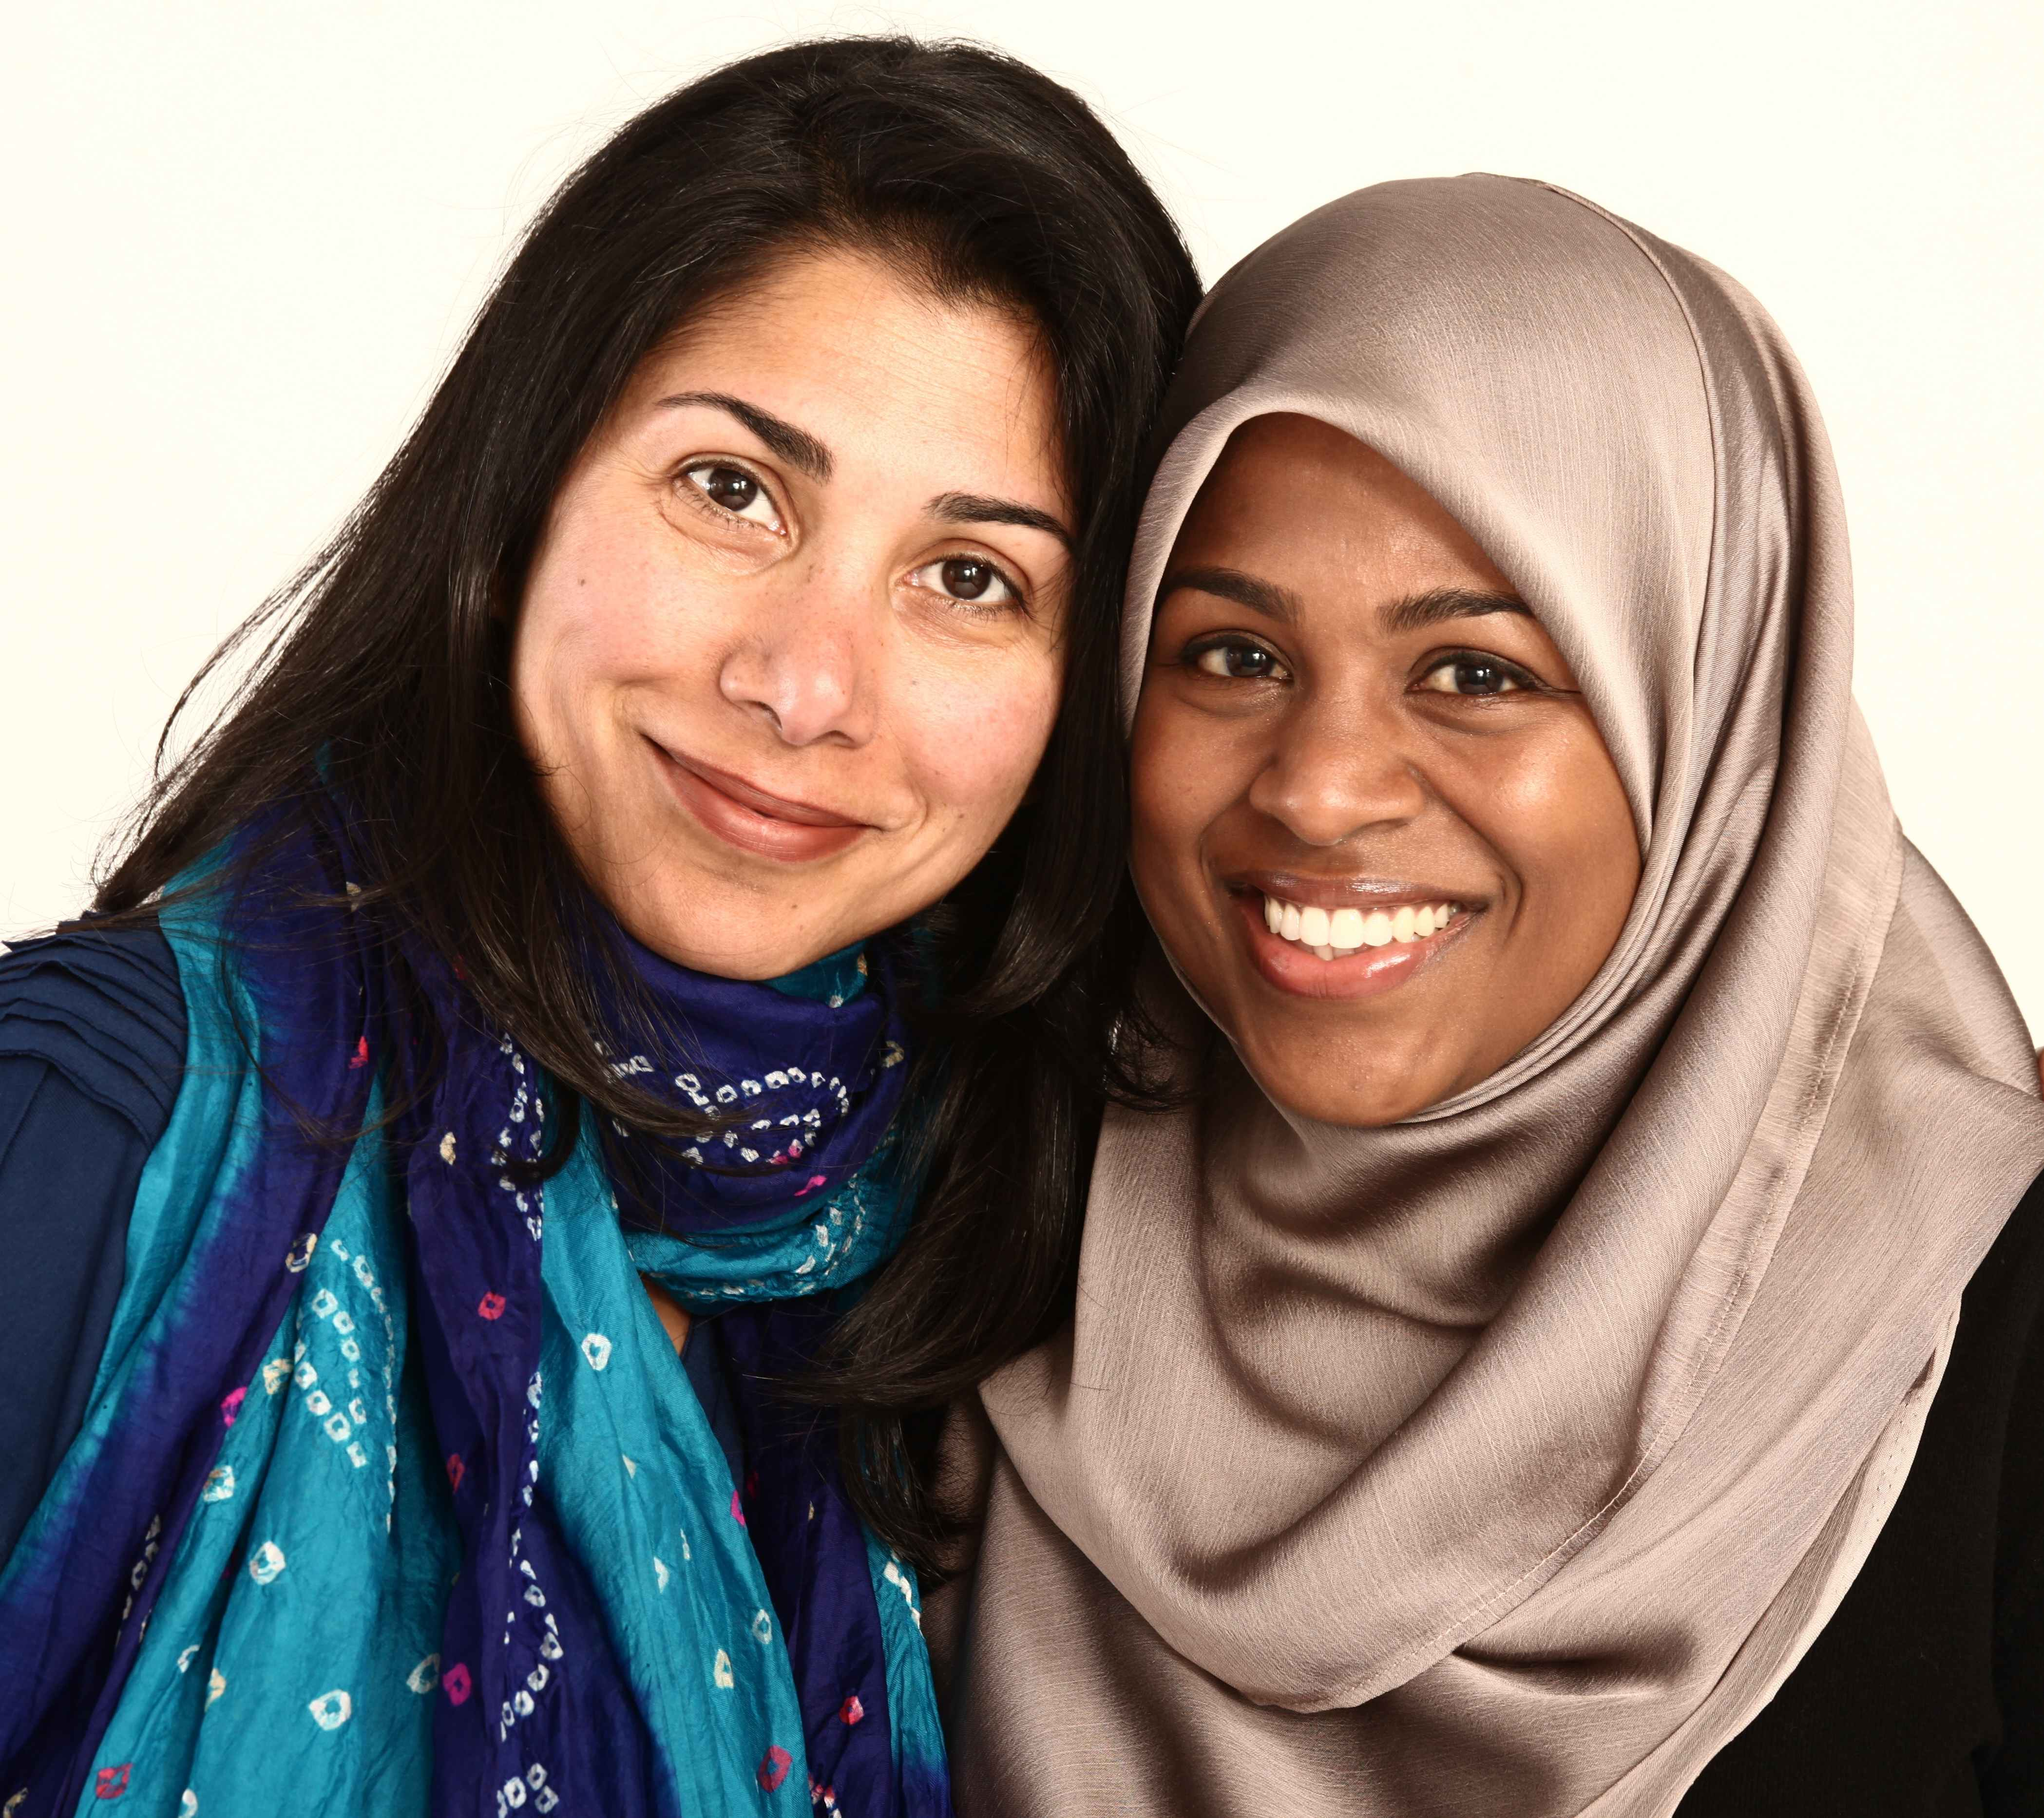 washington grove muslim single women 162 homeless shelters in the rockville, md that help  dorothy day place is a transitional shelter for single adult women who are homeless  washington grove, md:.